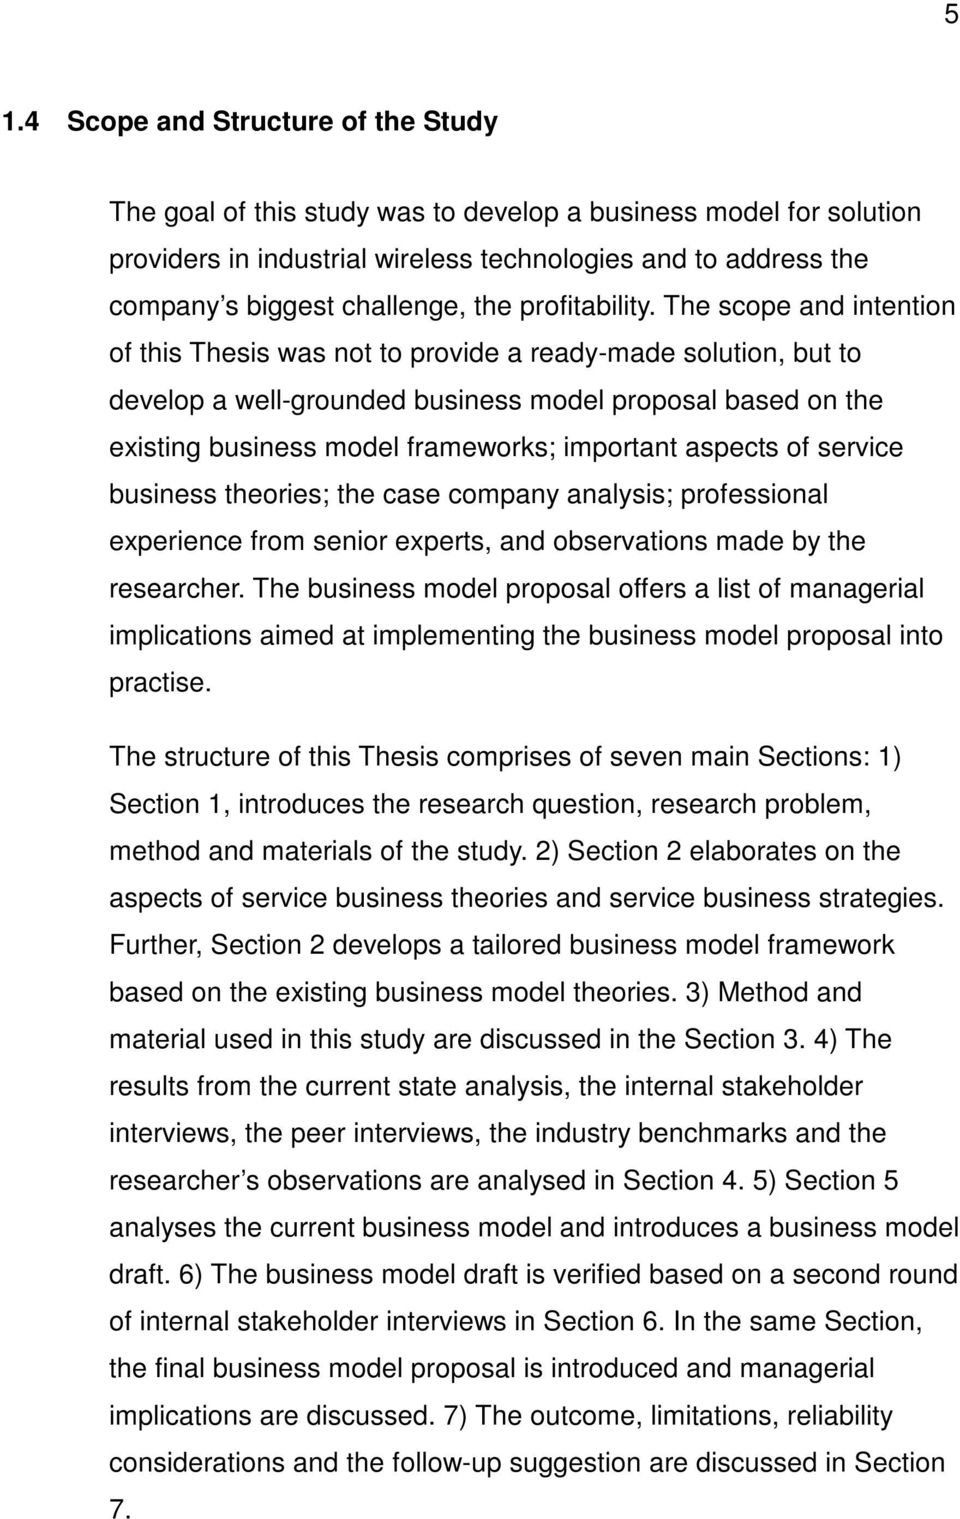 The scope and intention of this Thesis was not to provide a ready-made solution, but to develop a well-grounded business model proposal based on the existing business model frameworks; important